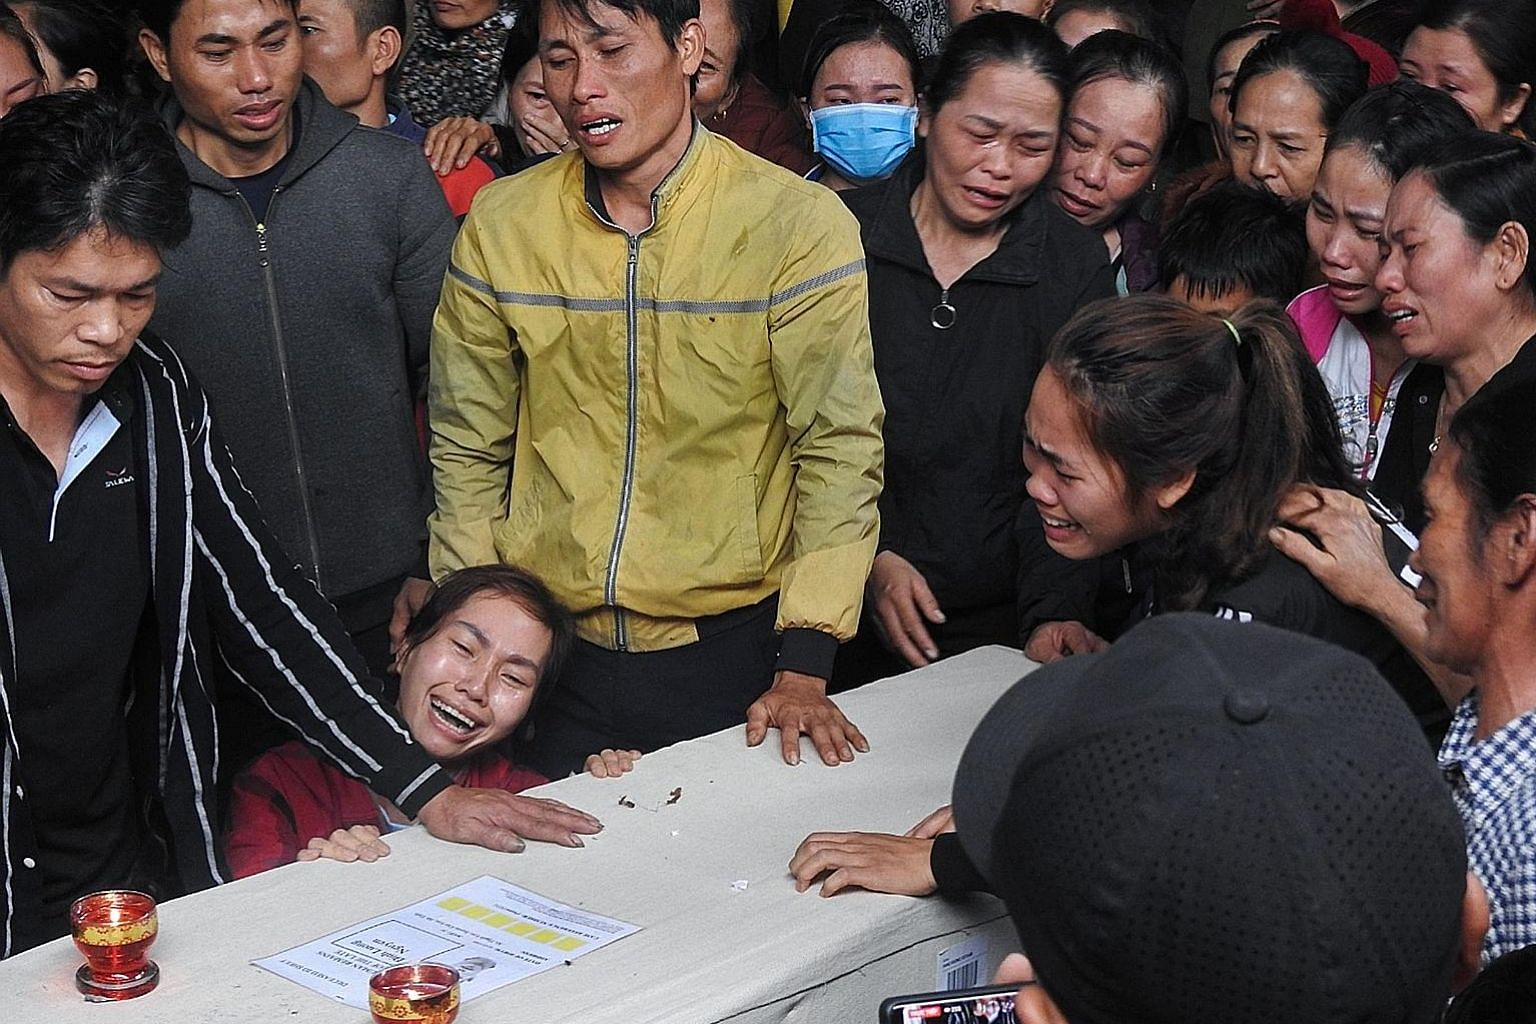 Relatives in Vietnam grieving over the repatriated remains of Mr Nguyen Dinh Luong, 20, who died in the back of a truck in Britain.